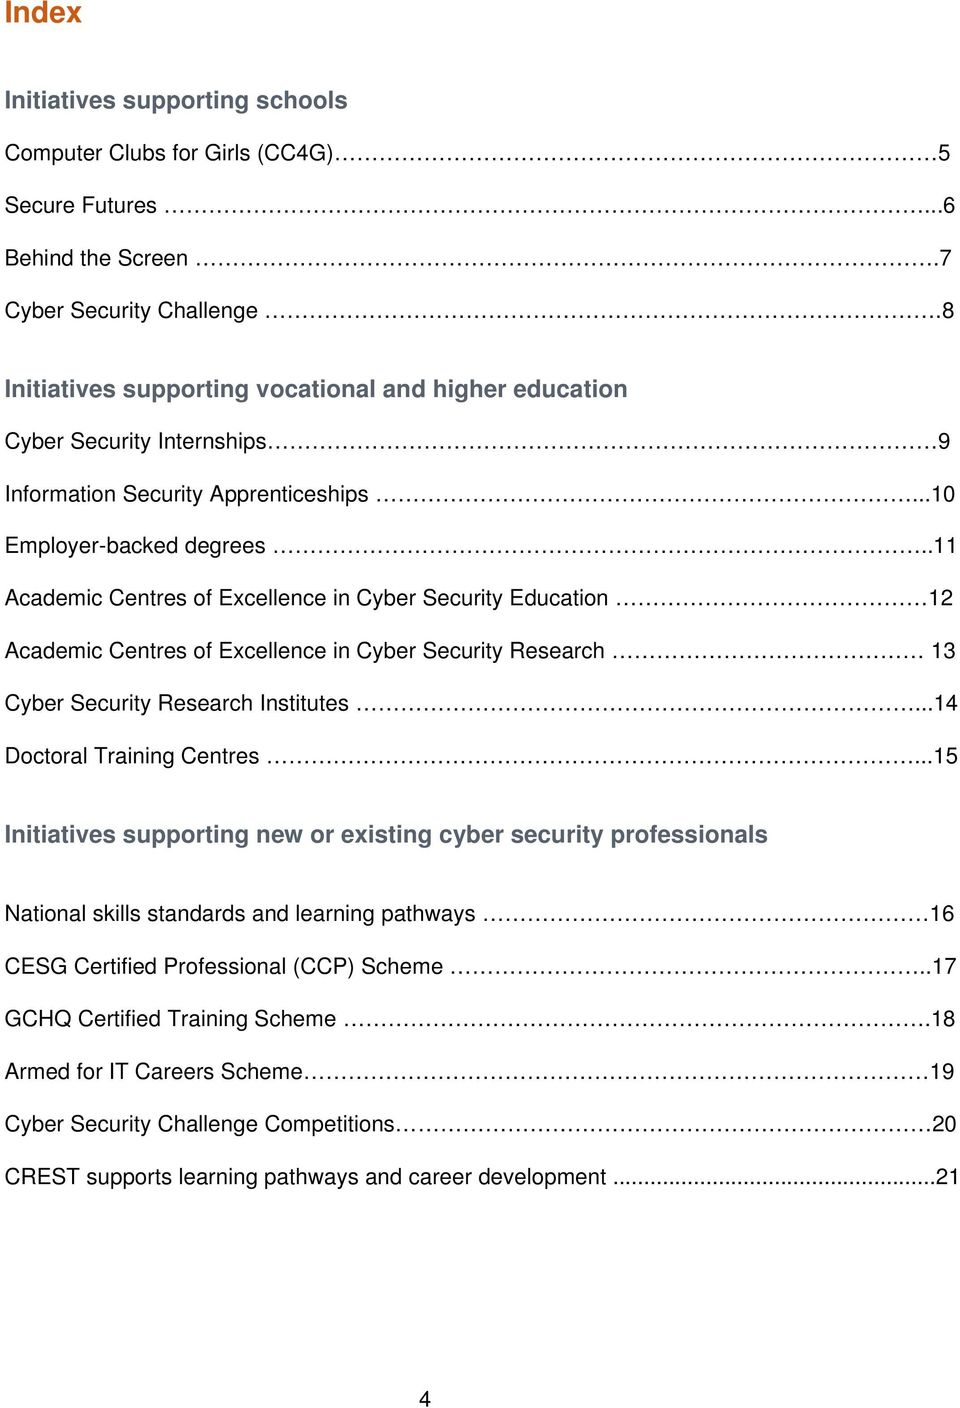 .11 Academic Centres of Excellence in Cyber Security Education 12 Academic Centres of Excellence in Cyber Security Research 13 Cyber Security Research Institutes...14 Doctoral Training Centres.